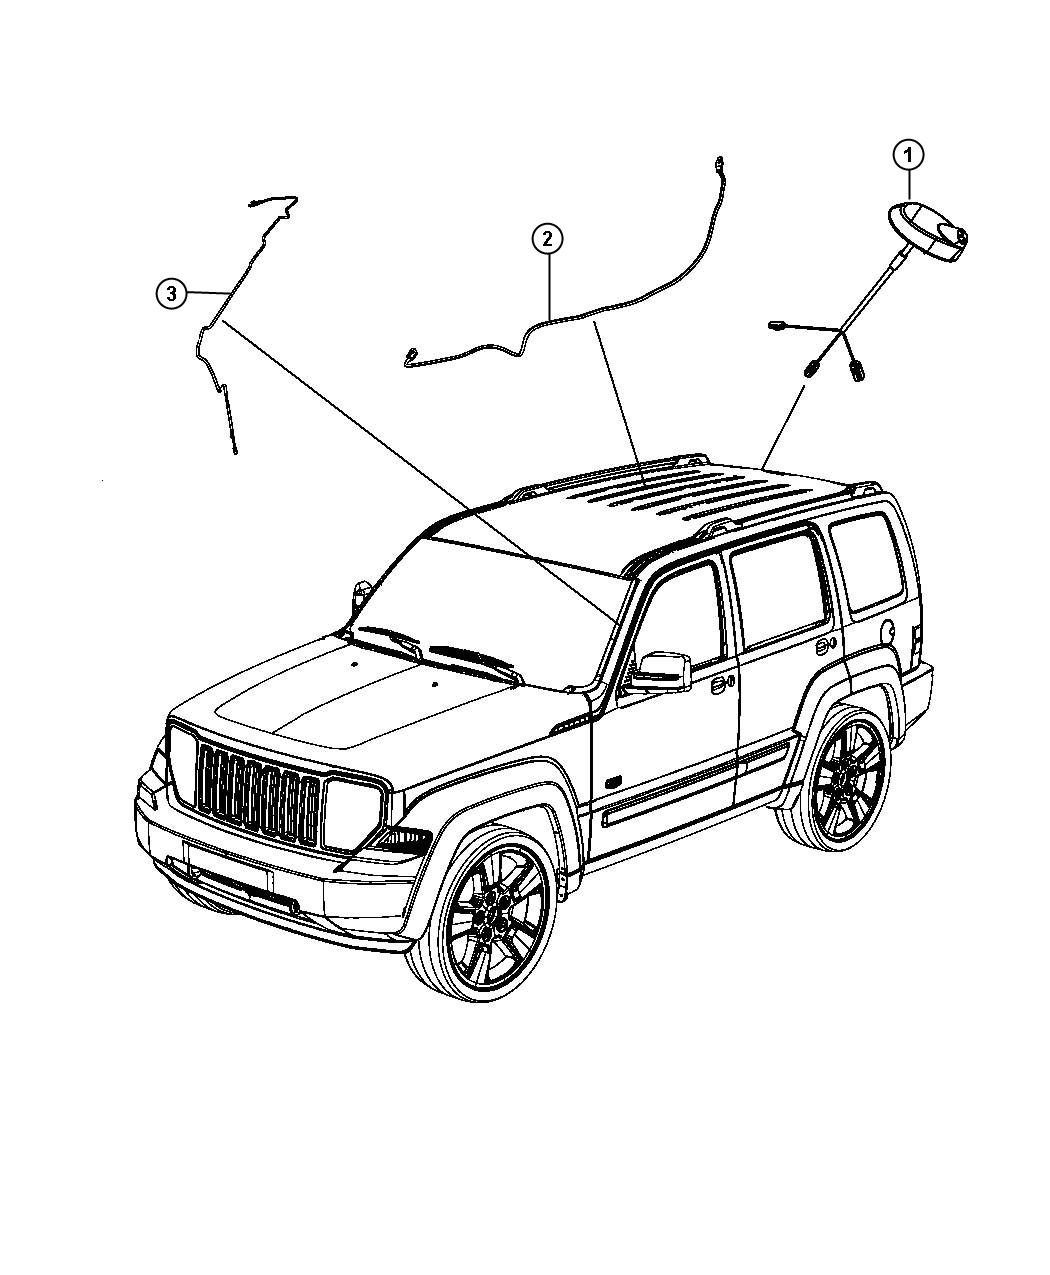 2012 jeep liberty antenna  used for  base cable and bracket  antennasirius  garmin